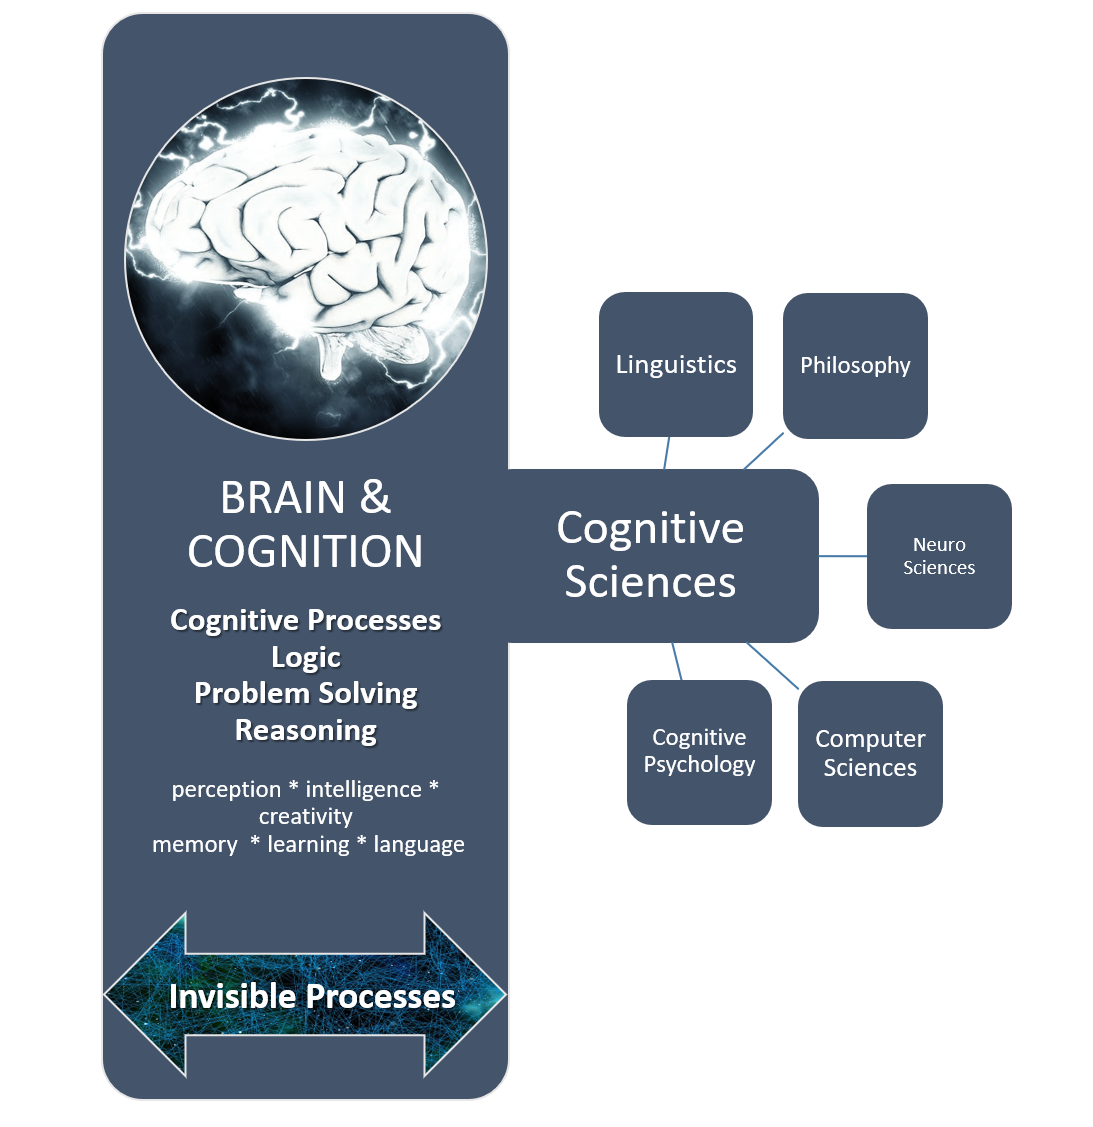 Methods of psychology in the cognition of human mental activity